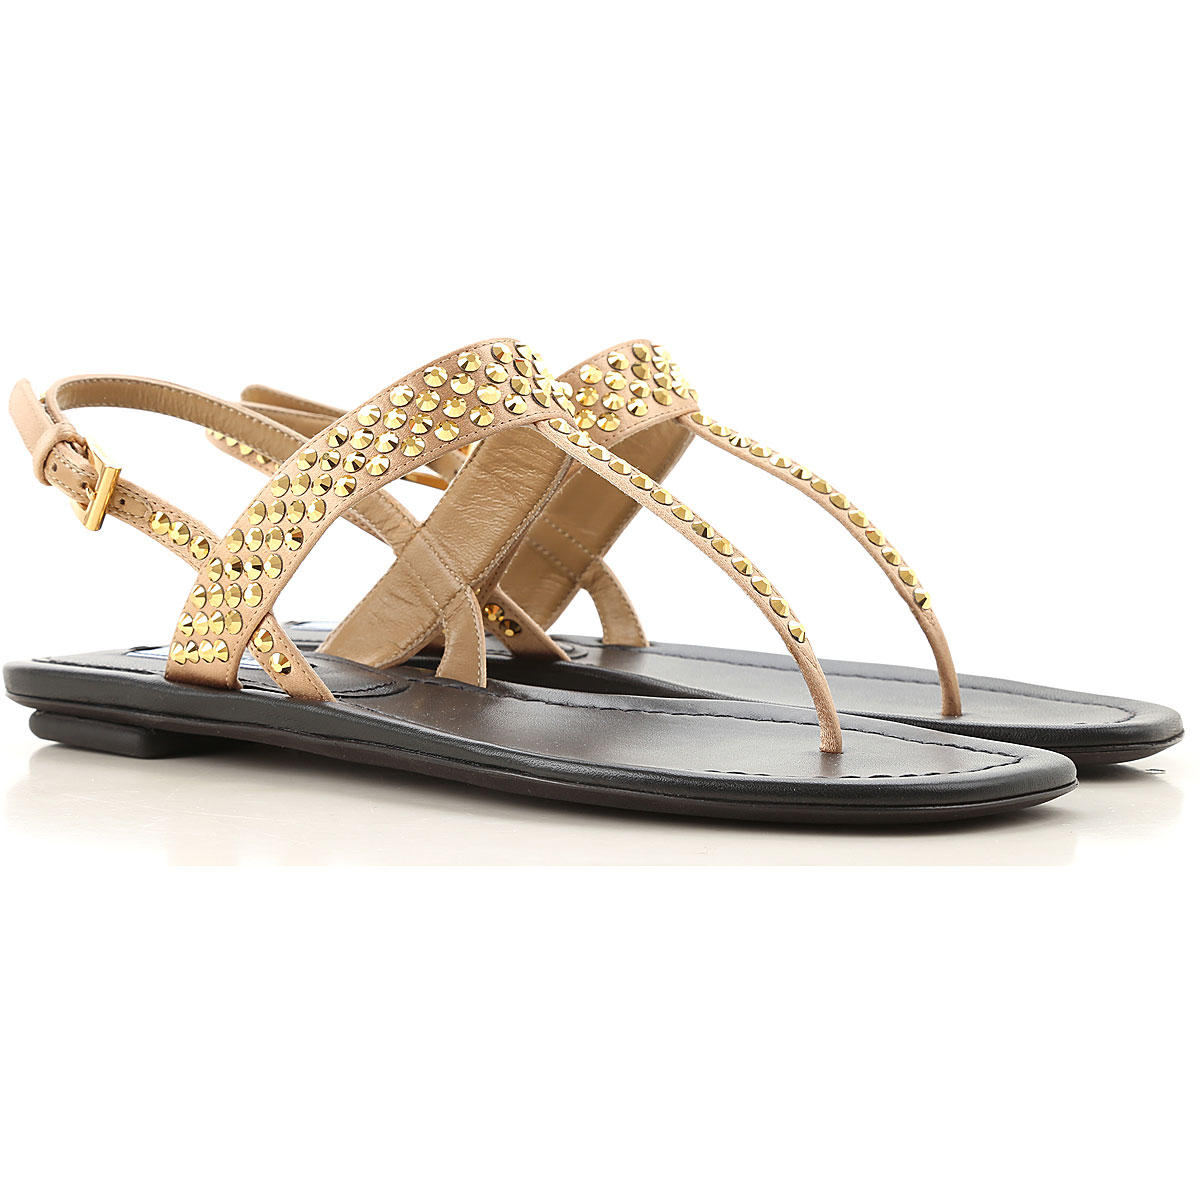 prada sandals for women on sale, gold, leather, 2019, 3 3.5 4.5 5 5.5 6 6.5 7.5